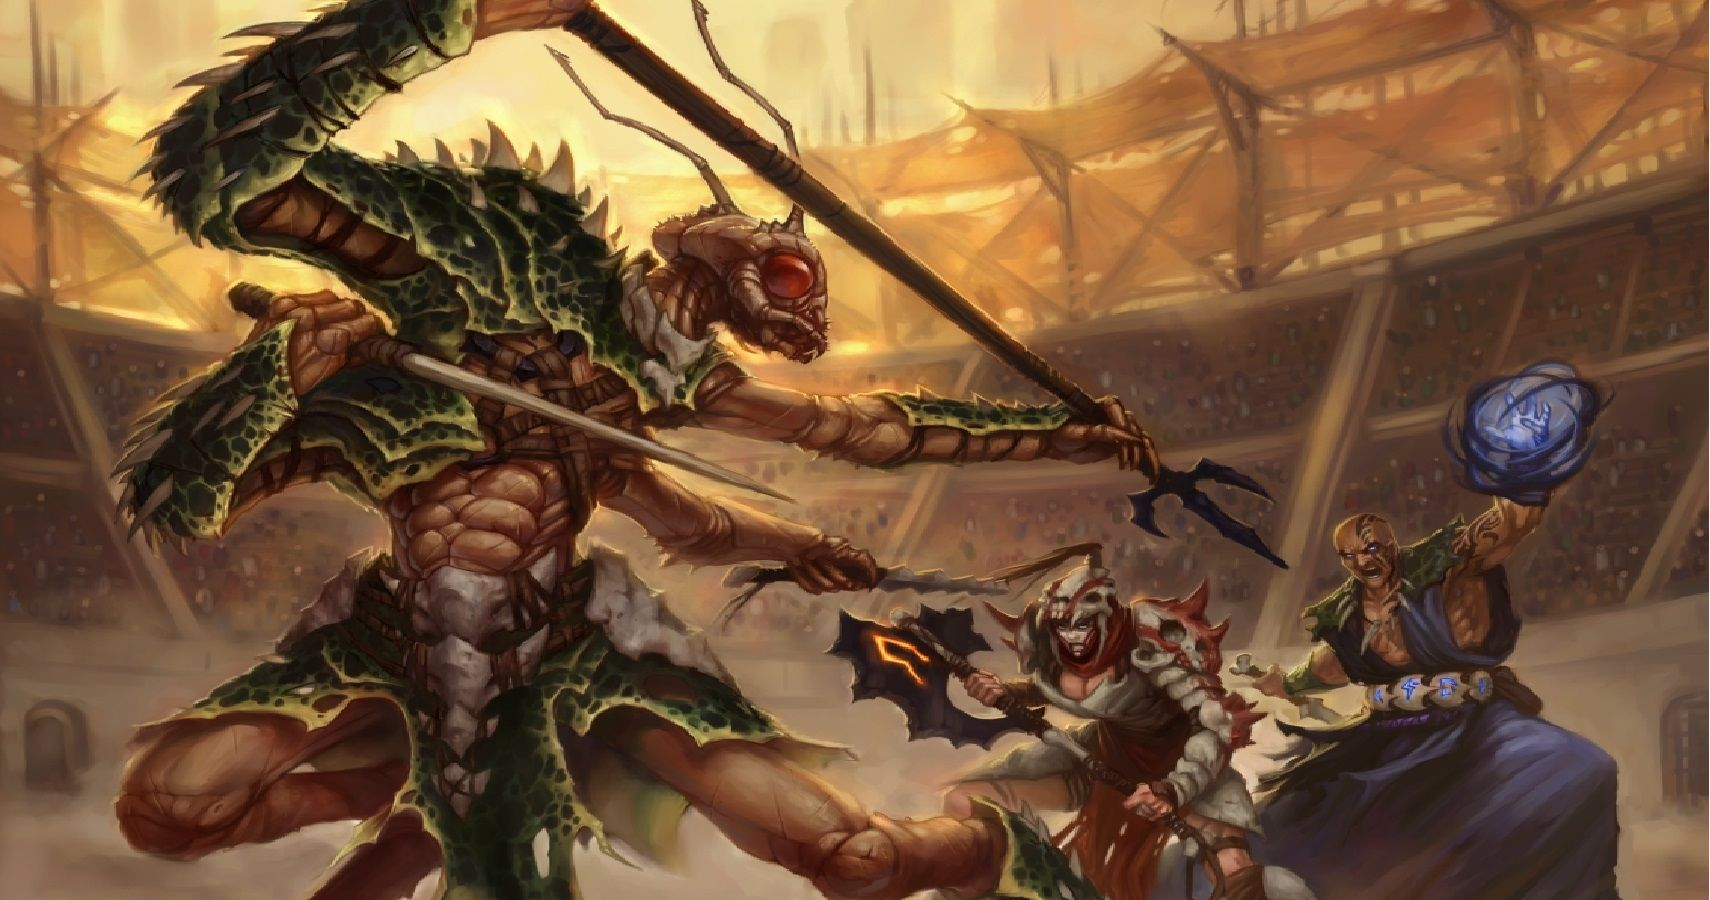 Dungeons Dragons 10 Powerful Monster Species That You Should Play As It wears no clothing or armor. dungeons dragons 10 powerful monster